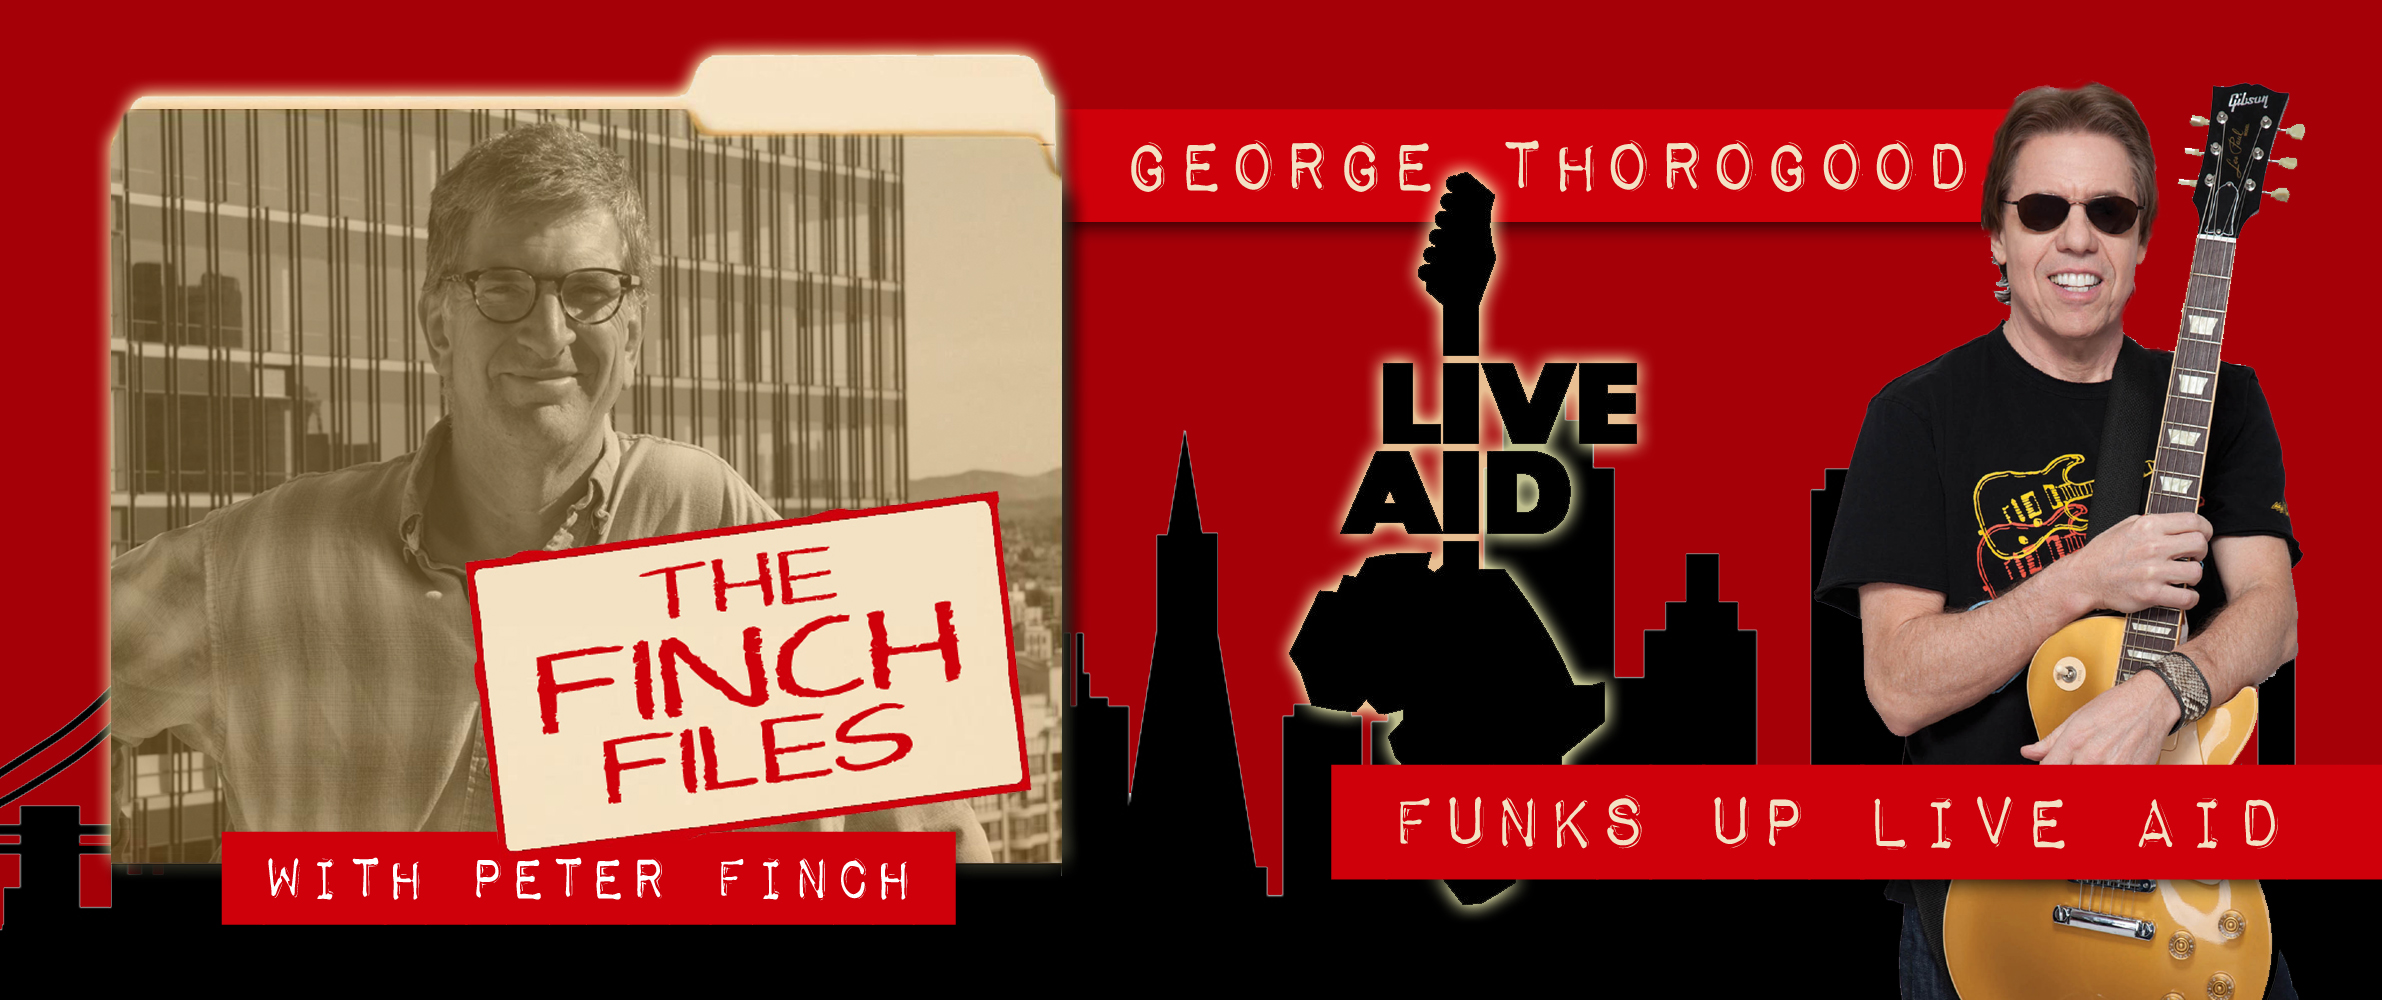 The Finch Files: George Thorogood funks up Live Aid